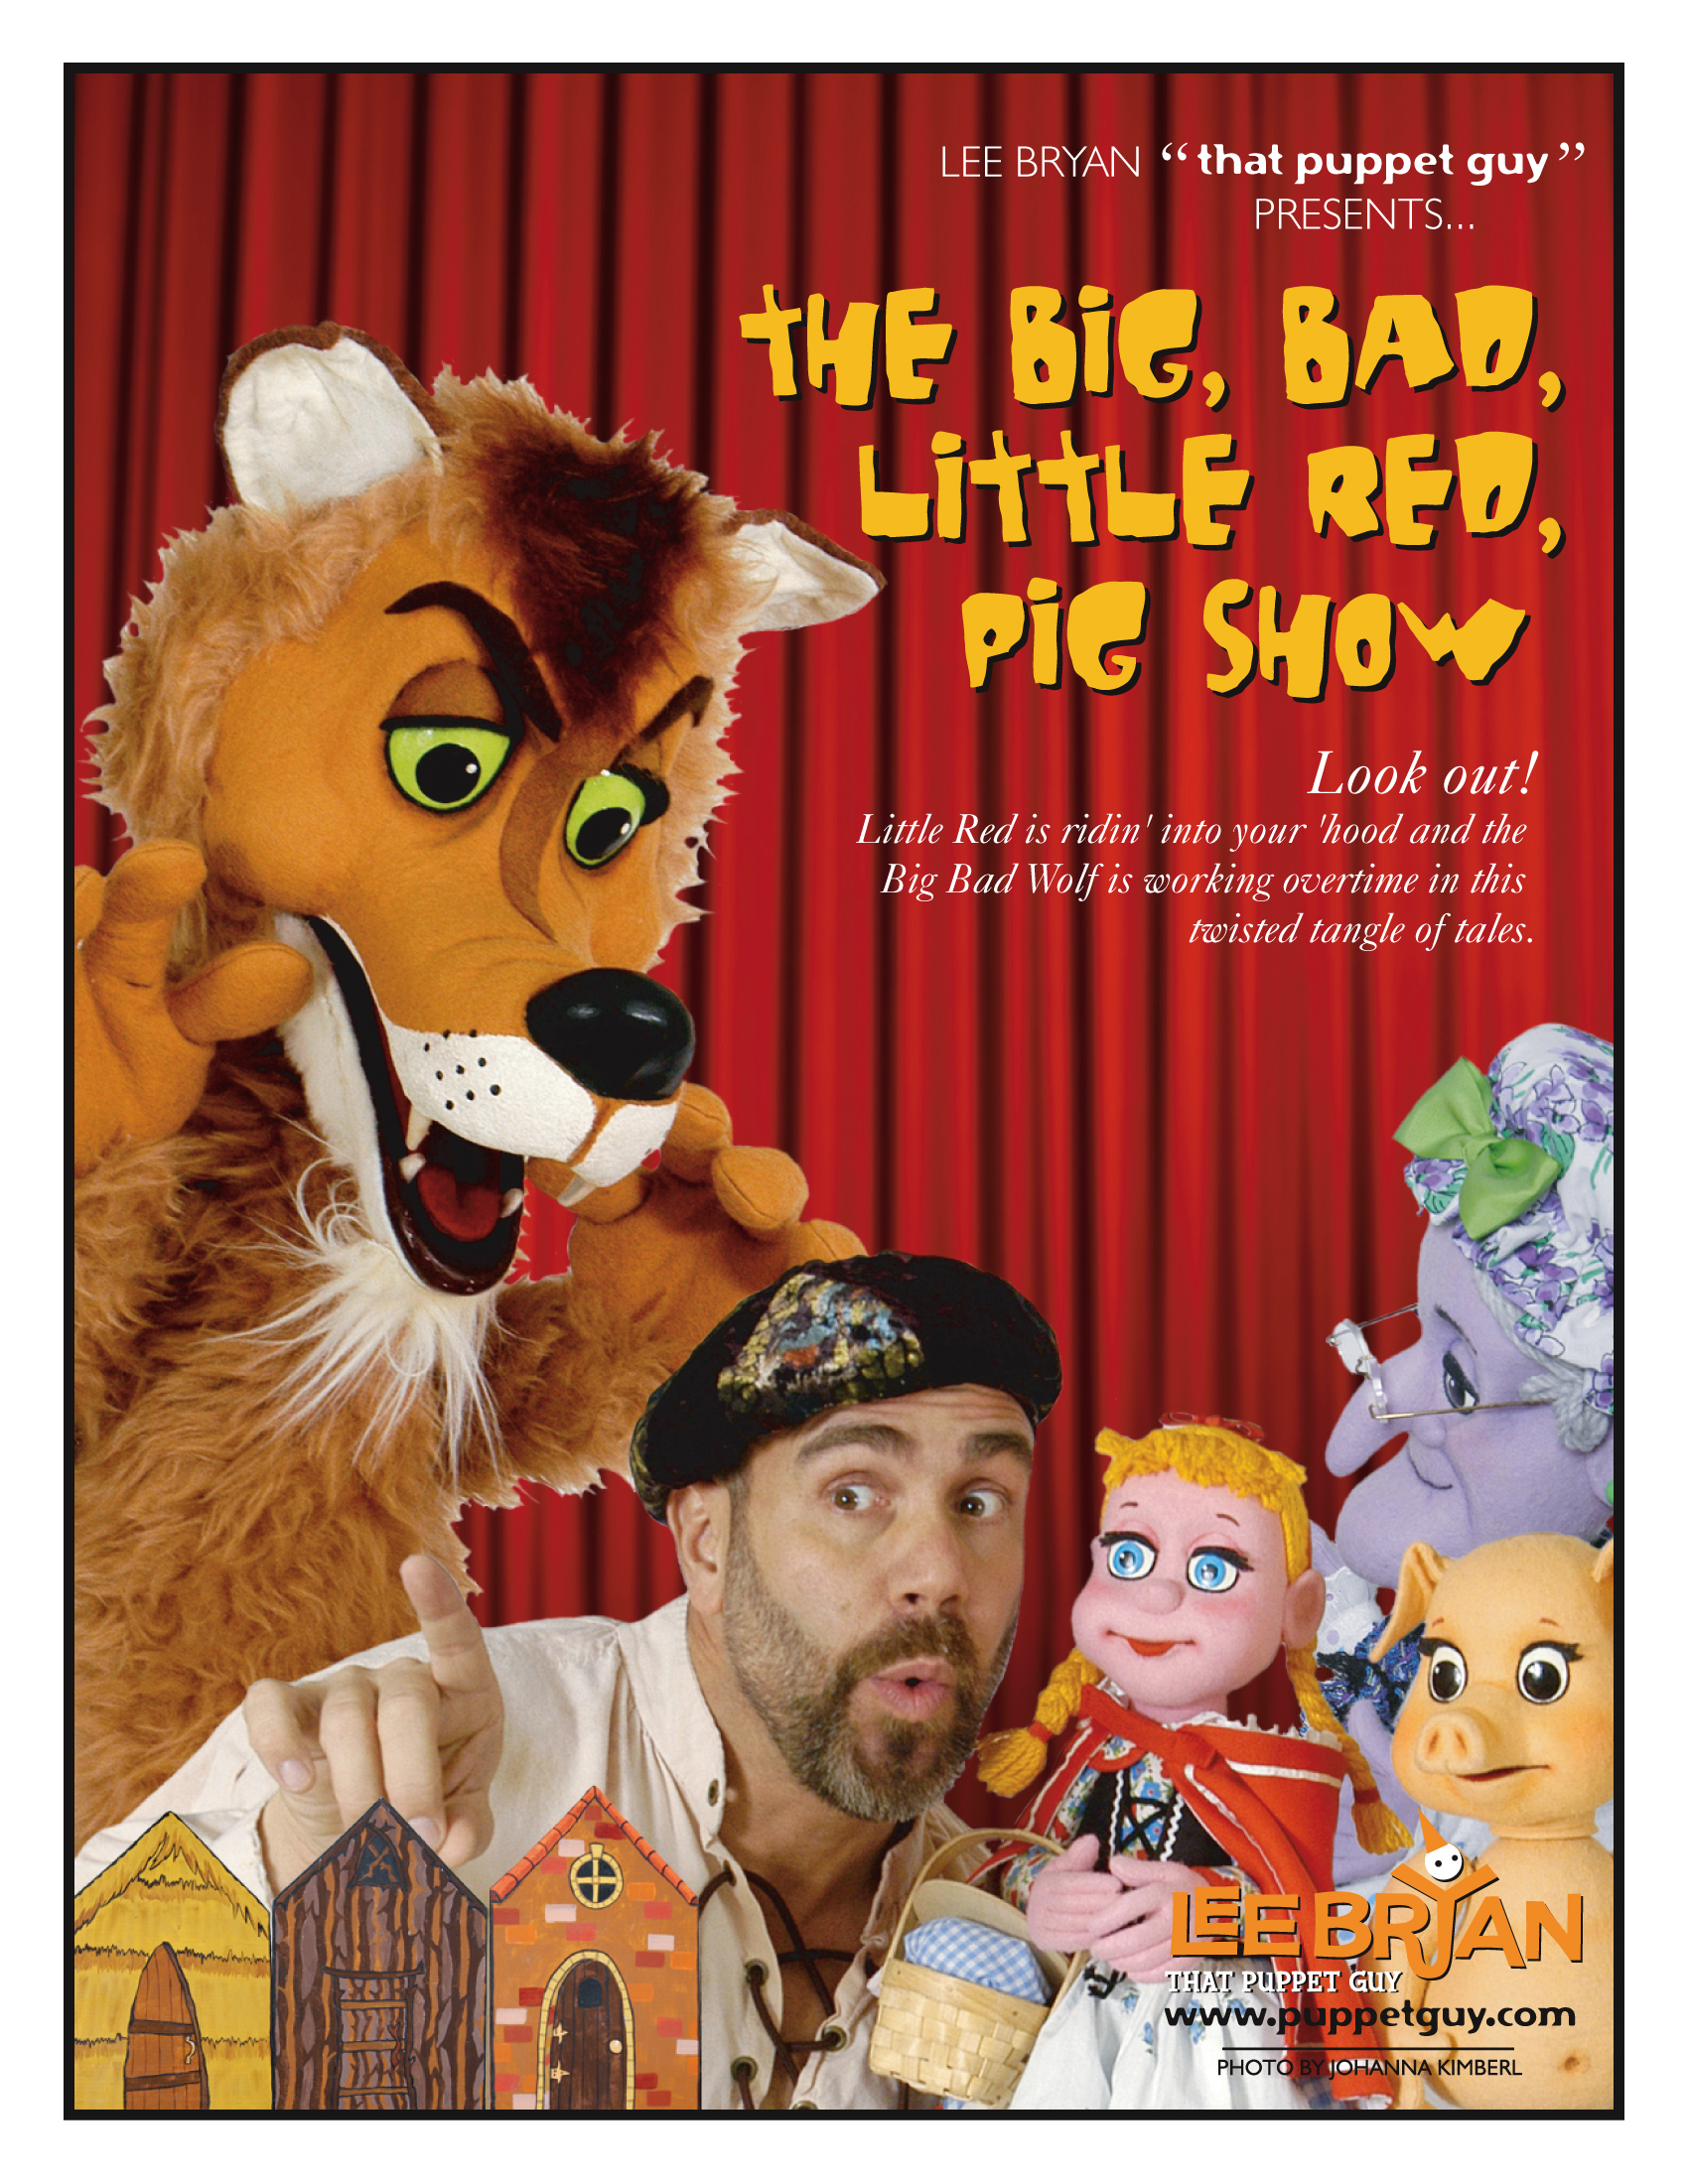 Publicity Slick The Big Bad, Little Red, Pig Show